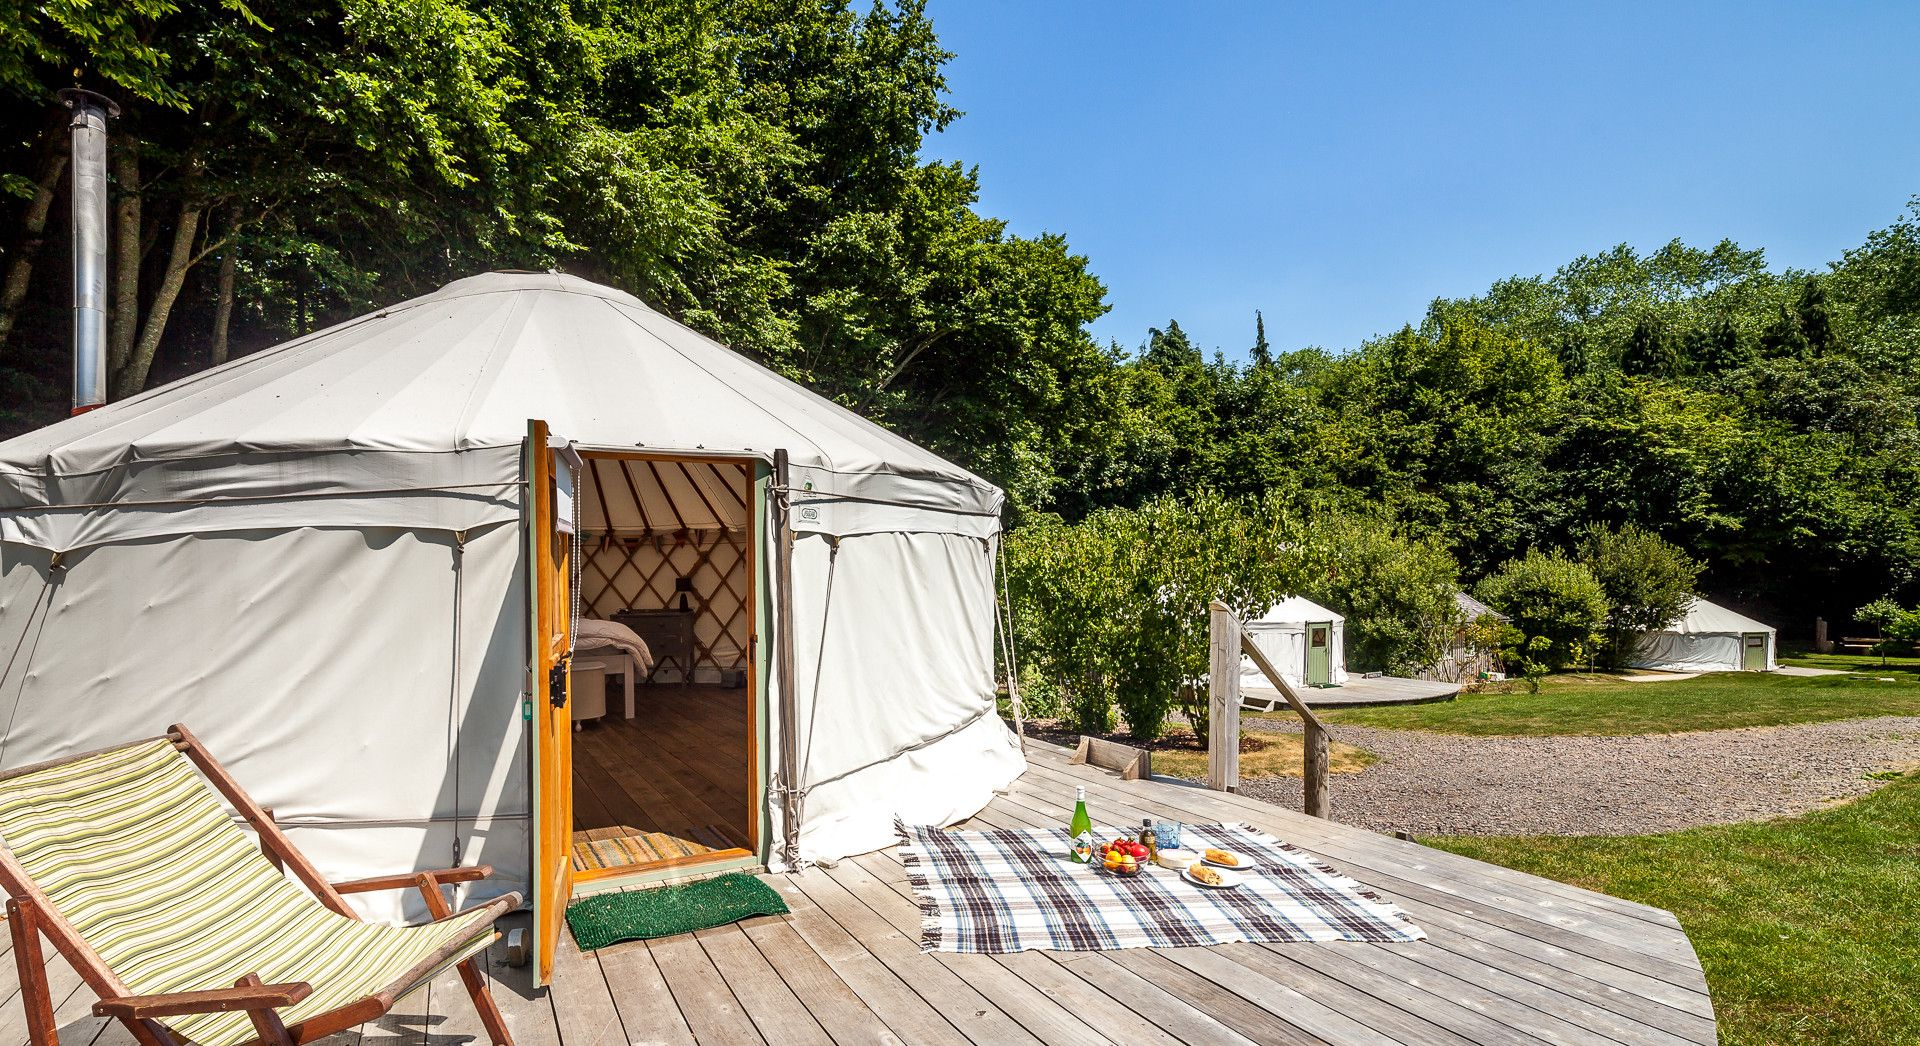 Tucked away at the foot of a medieval castle site, and surrounded by Somerset's rolling countryside, The Yurt Retreat is all about one thing - tranquility.